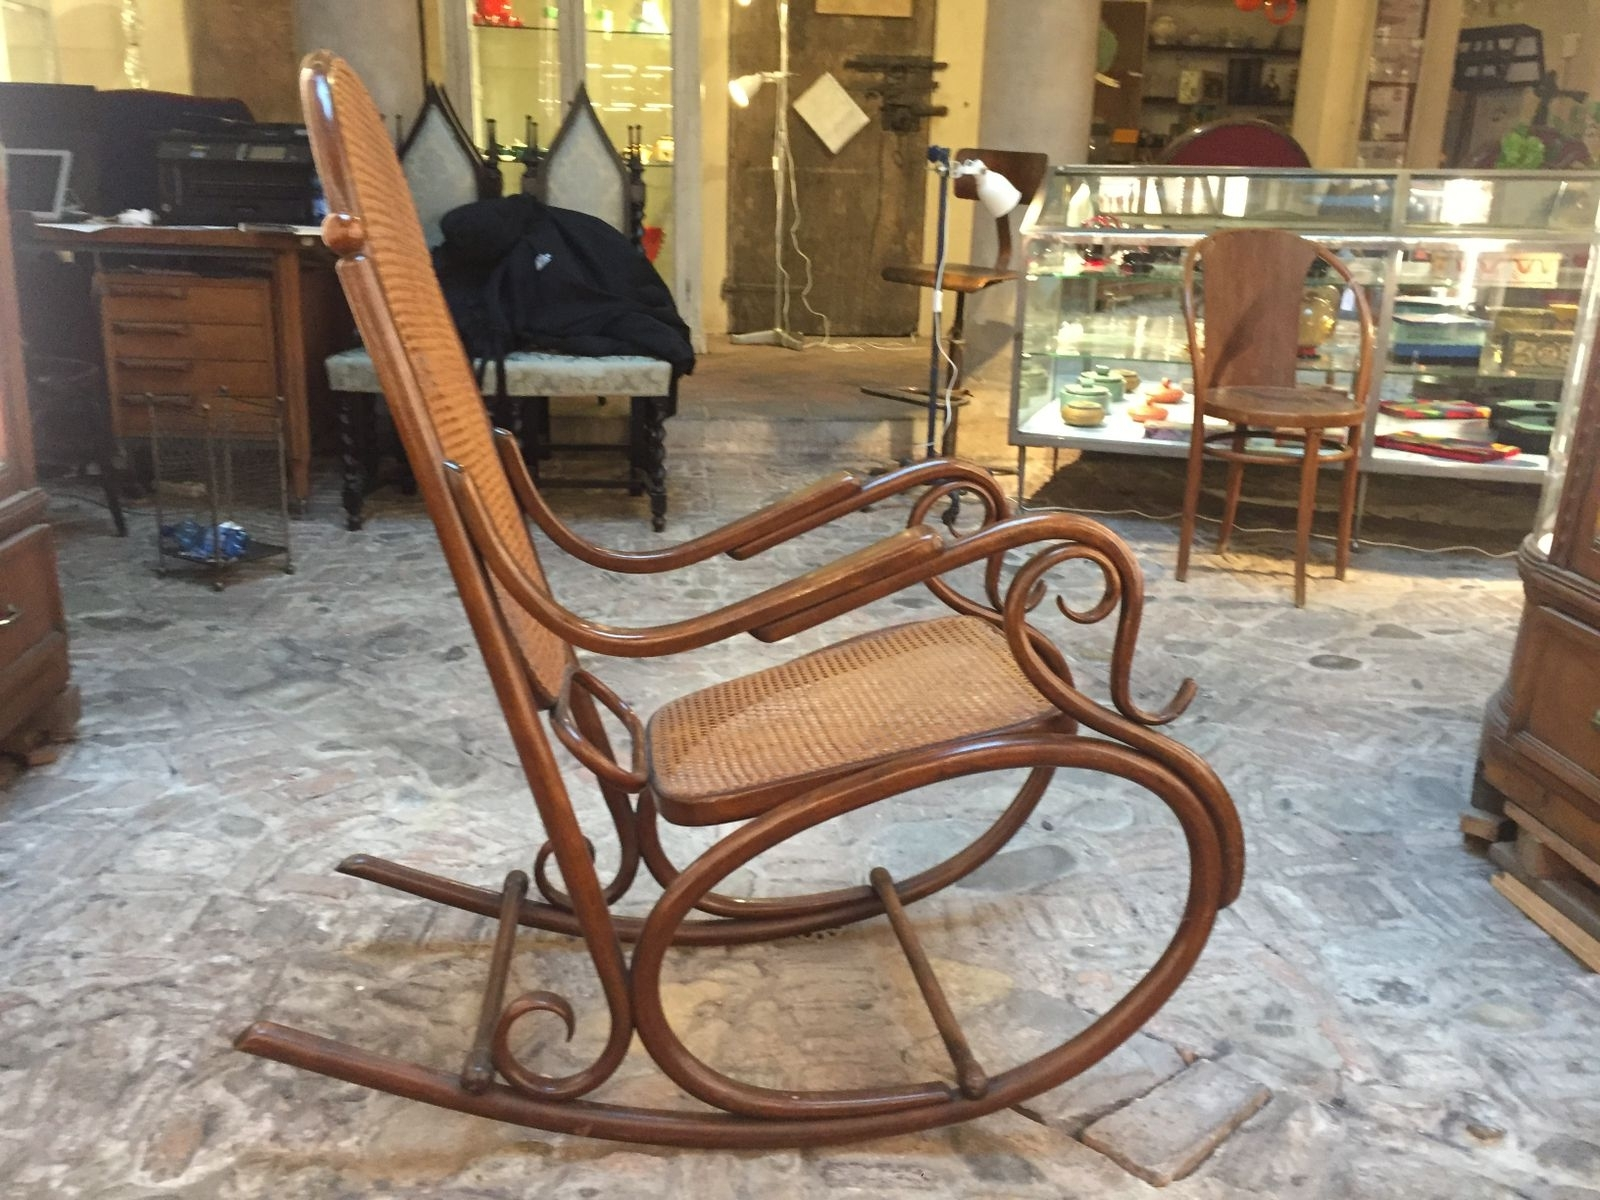 Most Recently Released Antique Rocking Chairs Regarding Antique Rocking Chair For Sale – Image Antique And Candle (View 12 of 15)